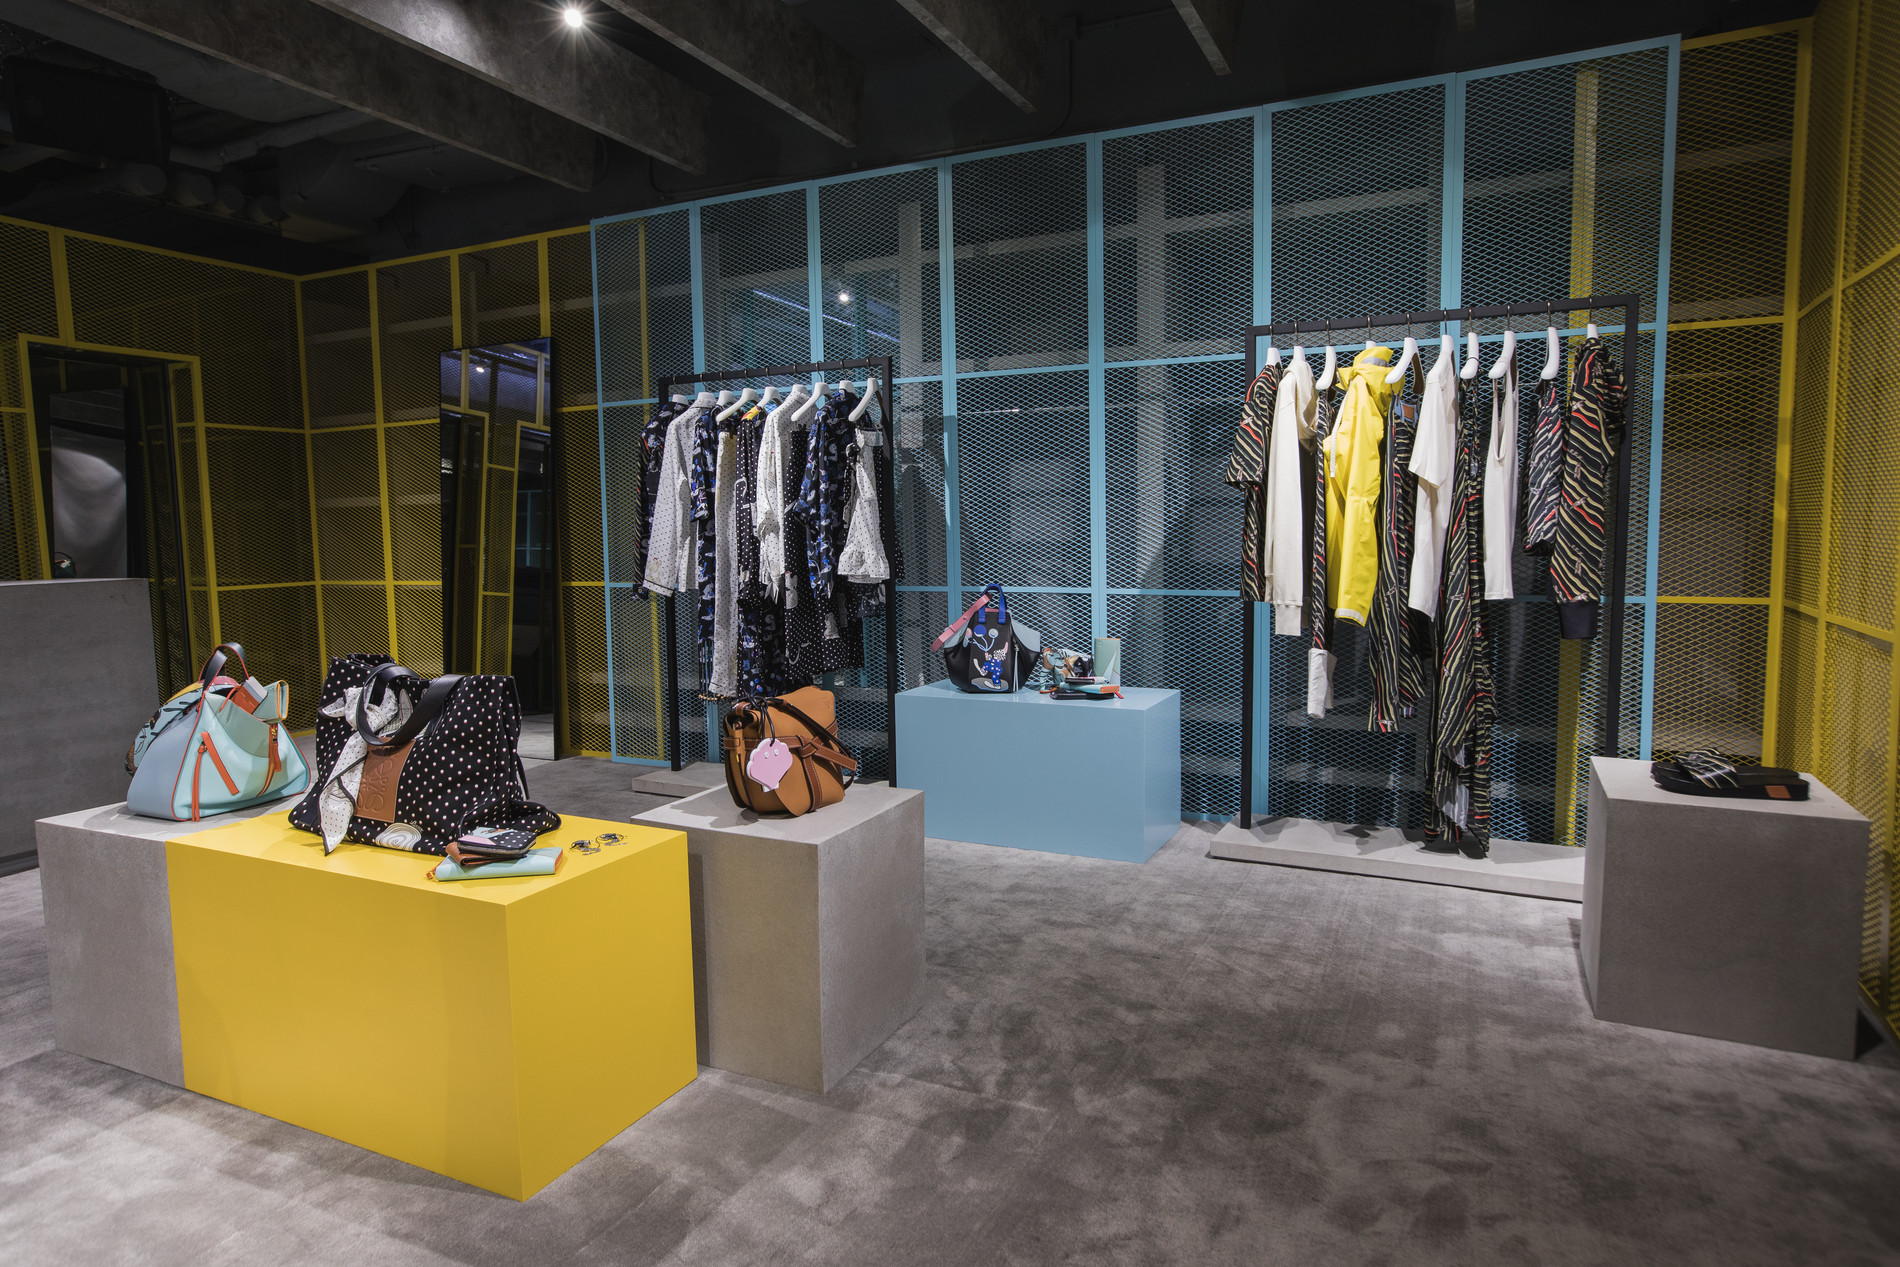 A Closer Look at the LOEWE x Paula's Ibiza Space